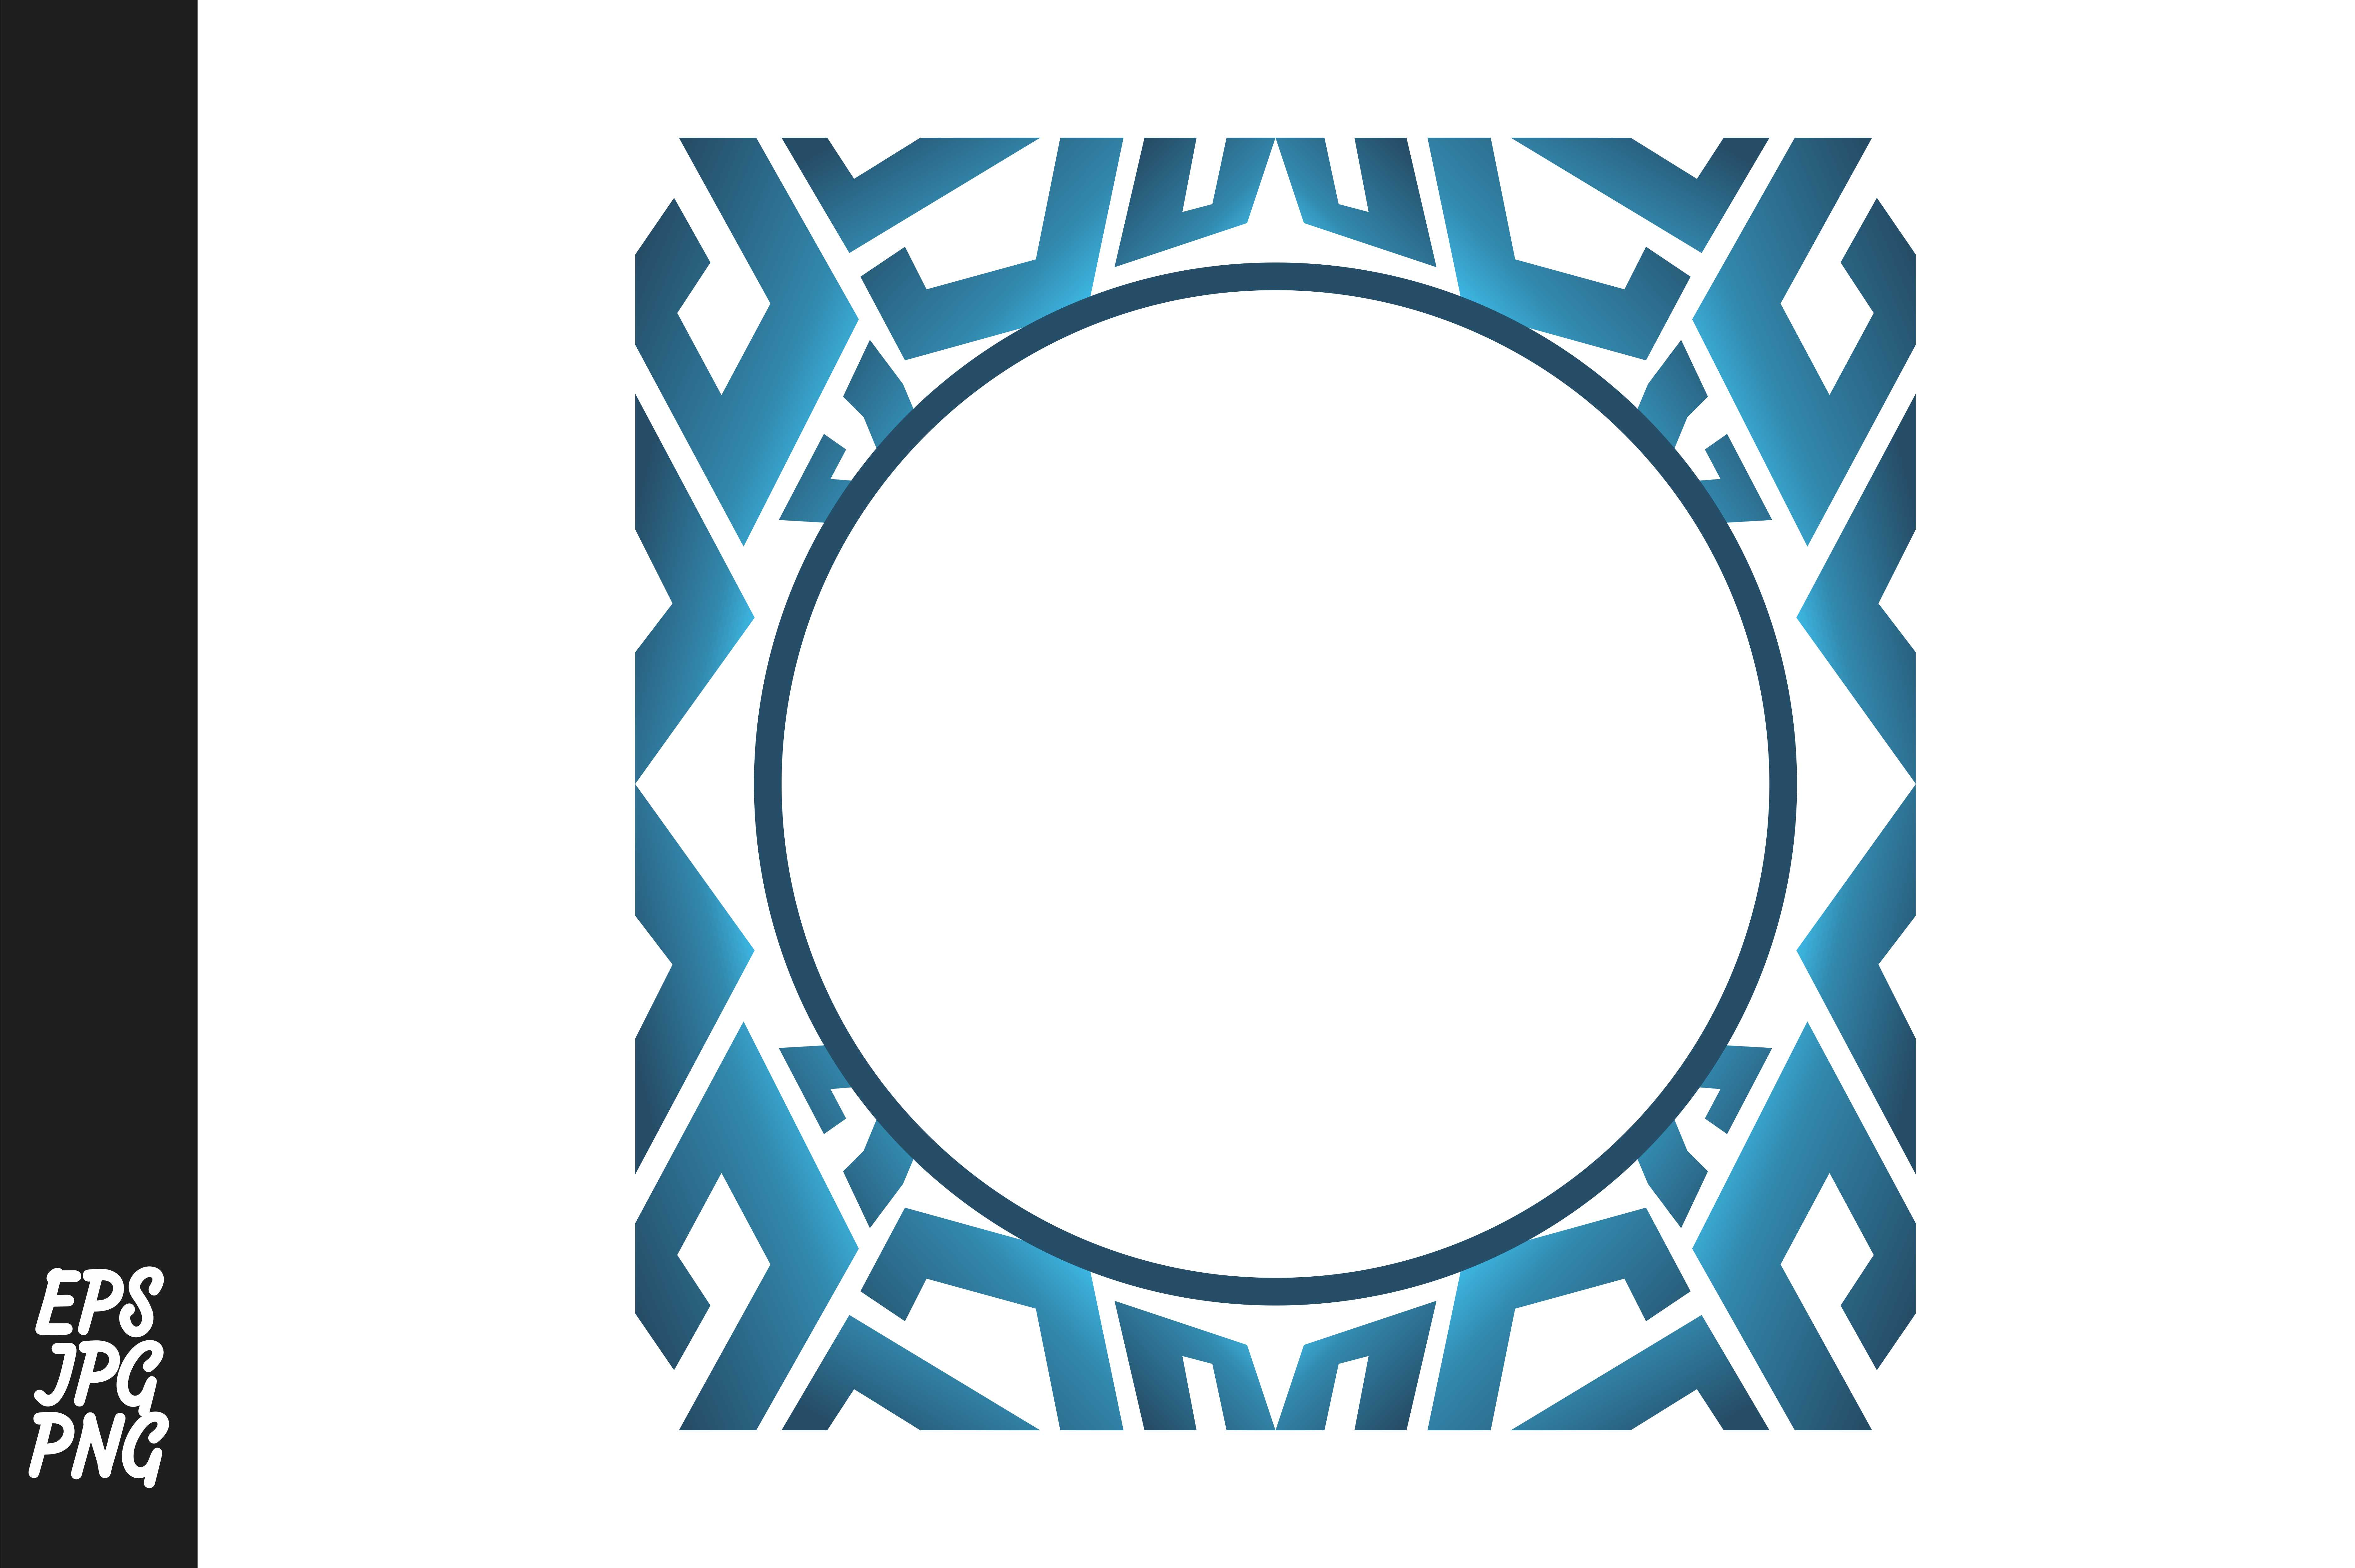 Download Free Blue Ornament Monogram Bundle Graphic By Arief Sapta Adjie for Cricut Explore, Silhouette and other cutting machines.